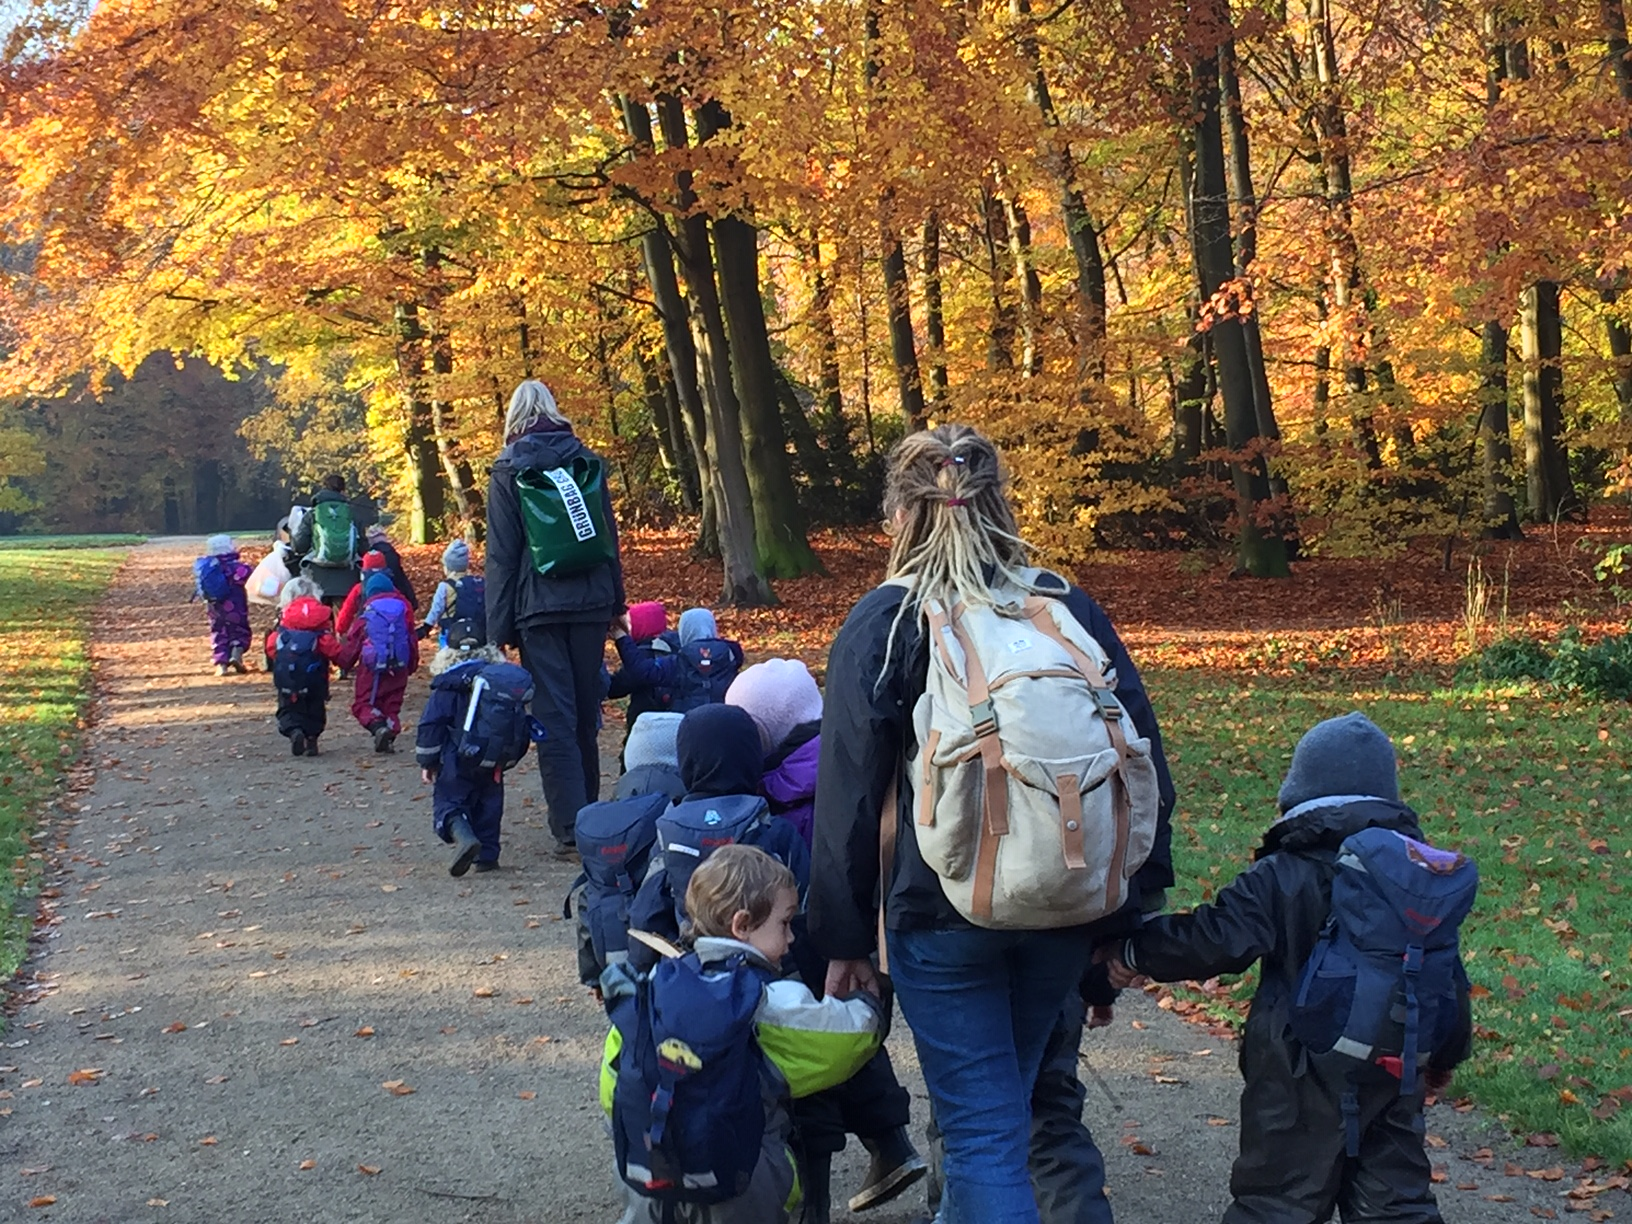 bfff8bdf6fe Adjusting to Danish early education – a challenging experience says an  American Mom